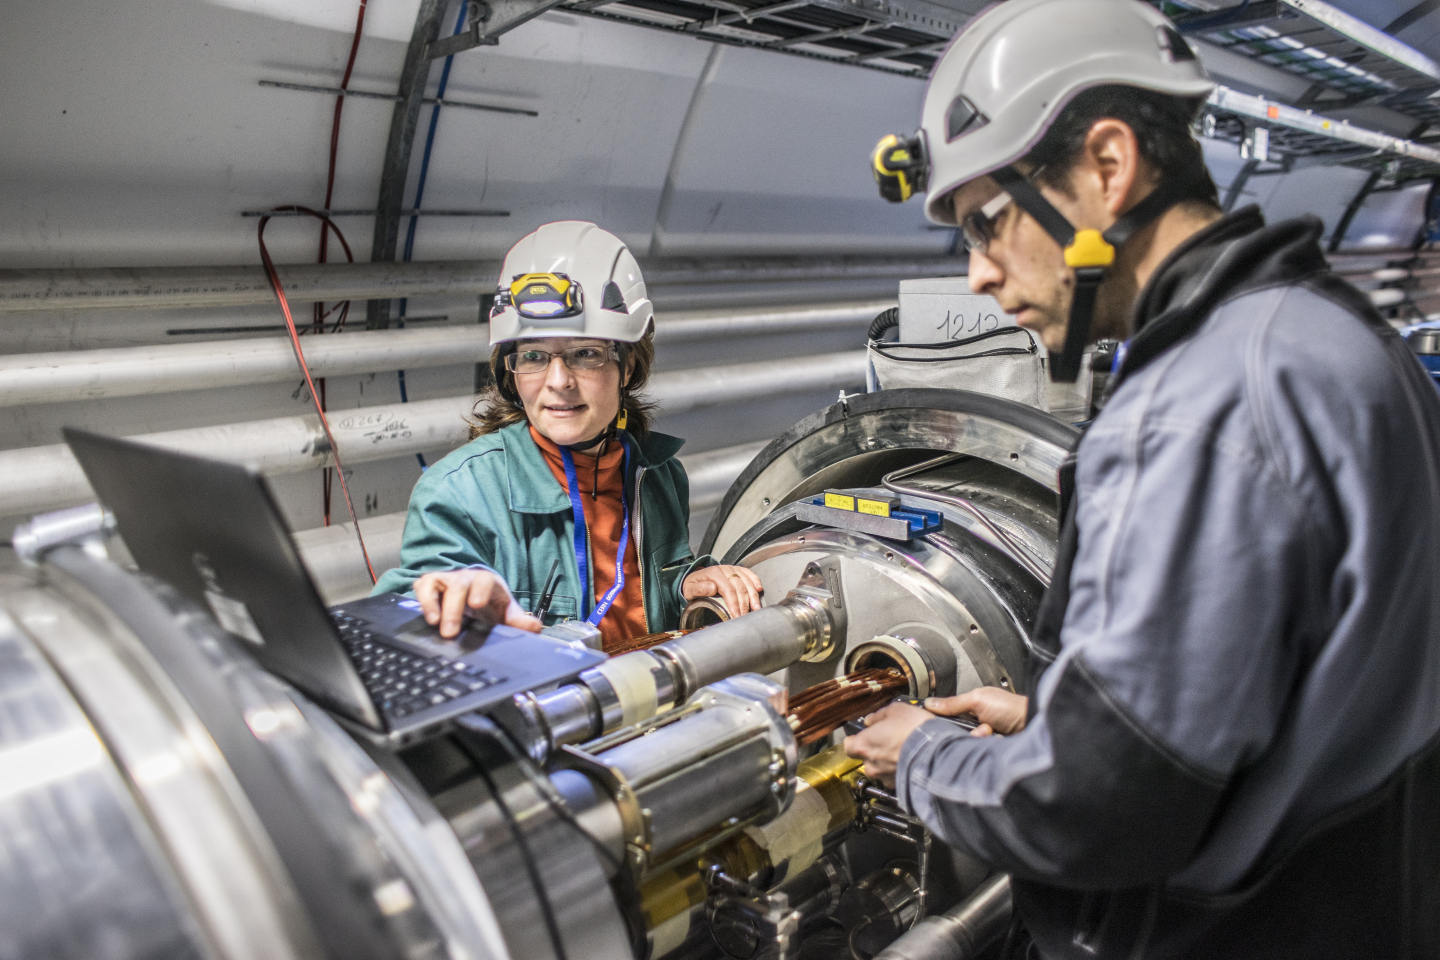 Cern unique opportunities at the cutting edge of technology   join the webinar on september 20 610f653d 293d 4df9 9809 7df5fe592abe